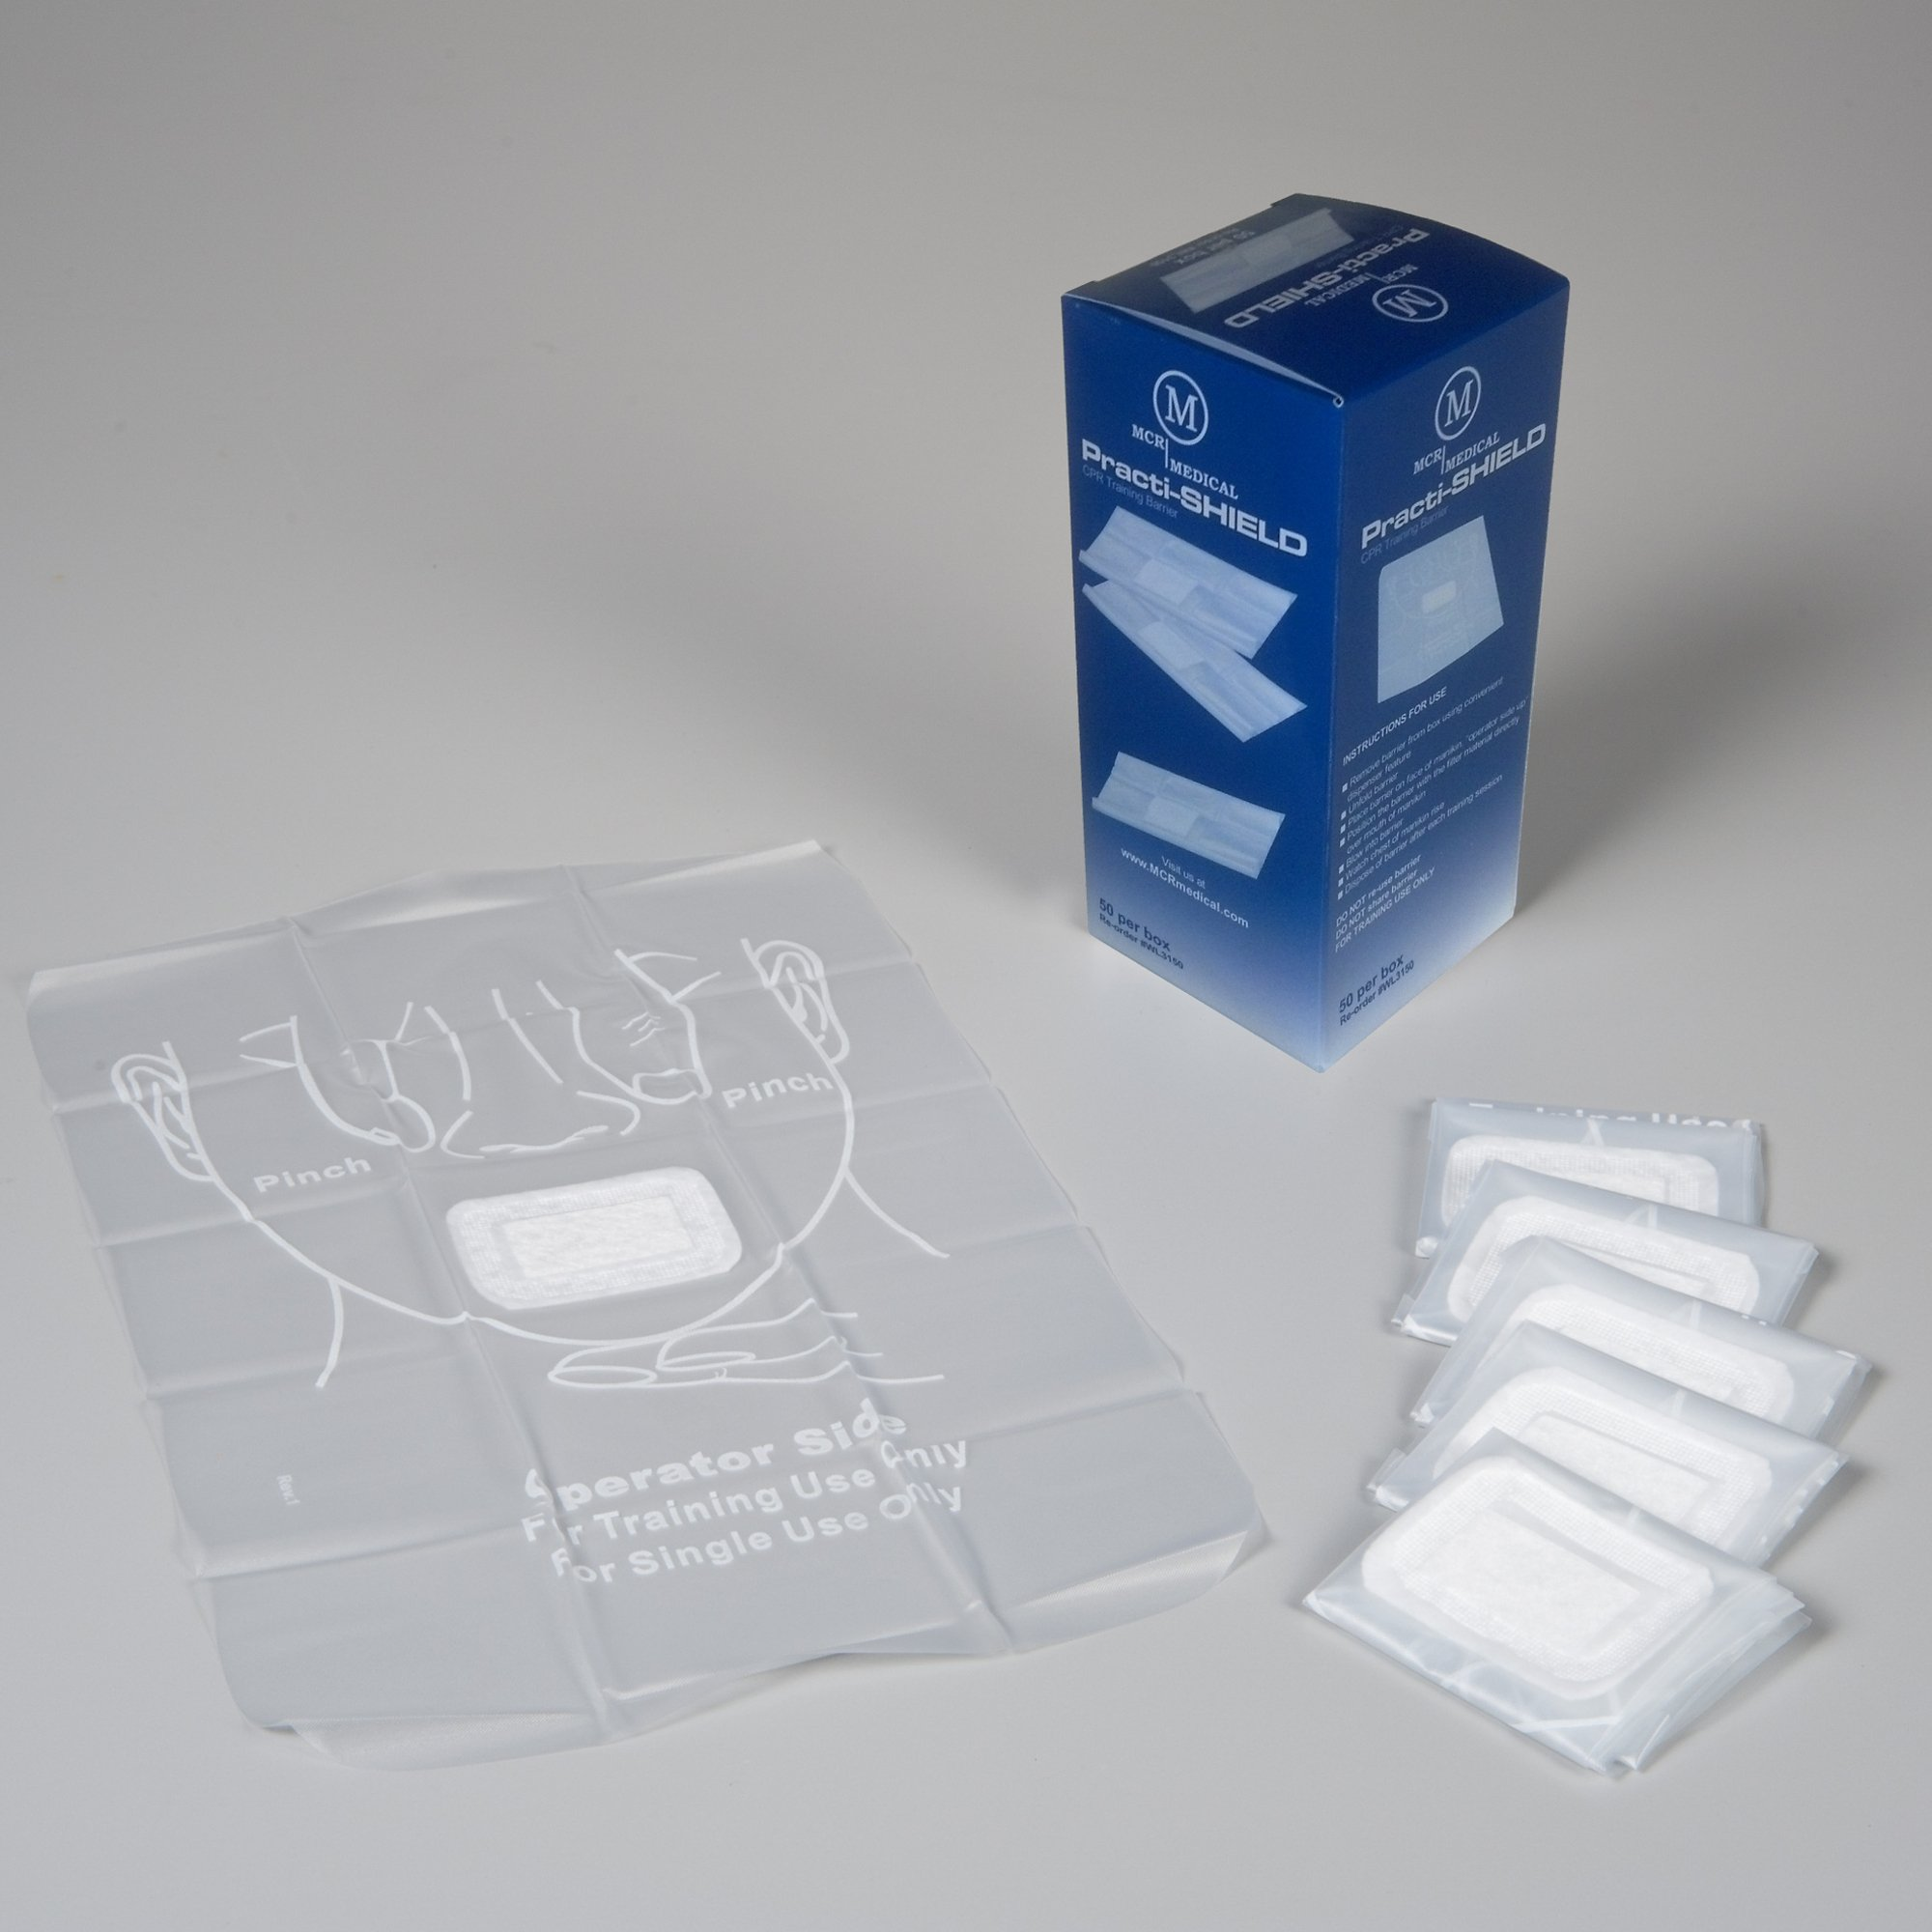 WNL Safety Products WL3150 Practi-Shield CPR Training Shields,(Box of 50)